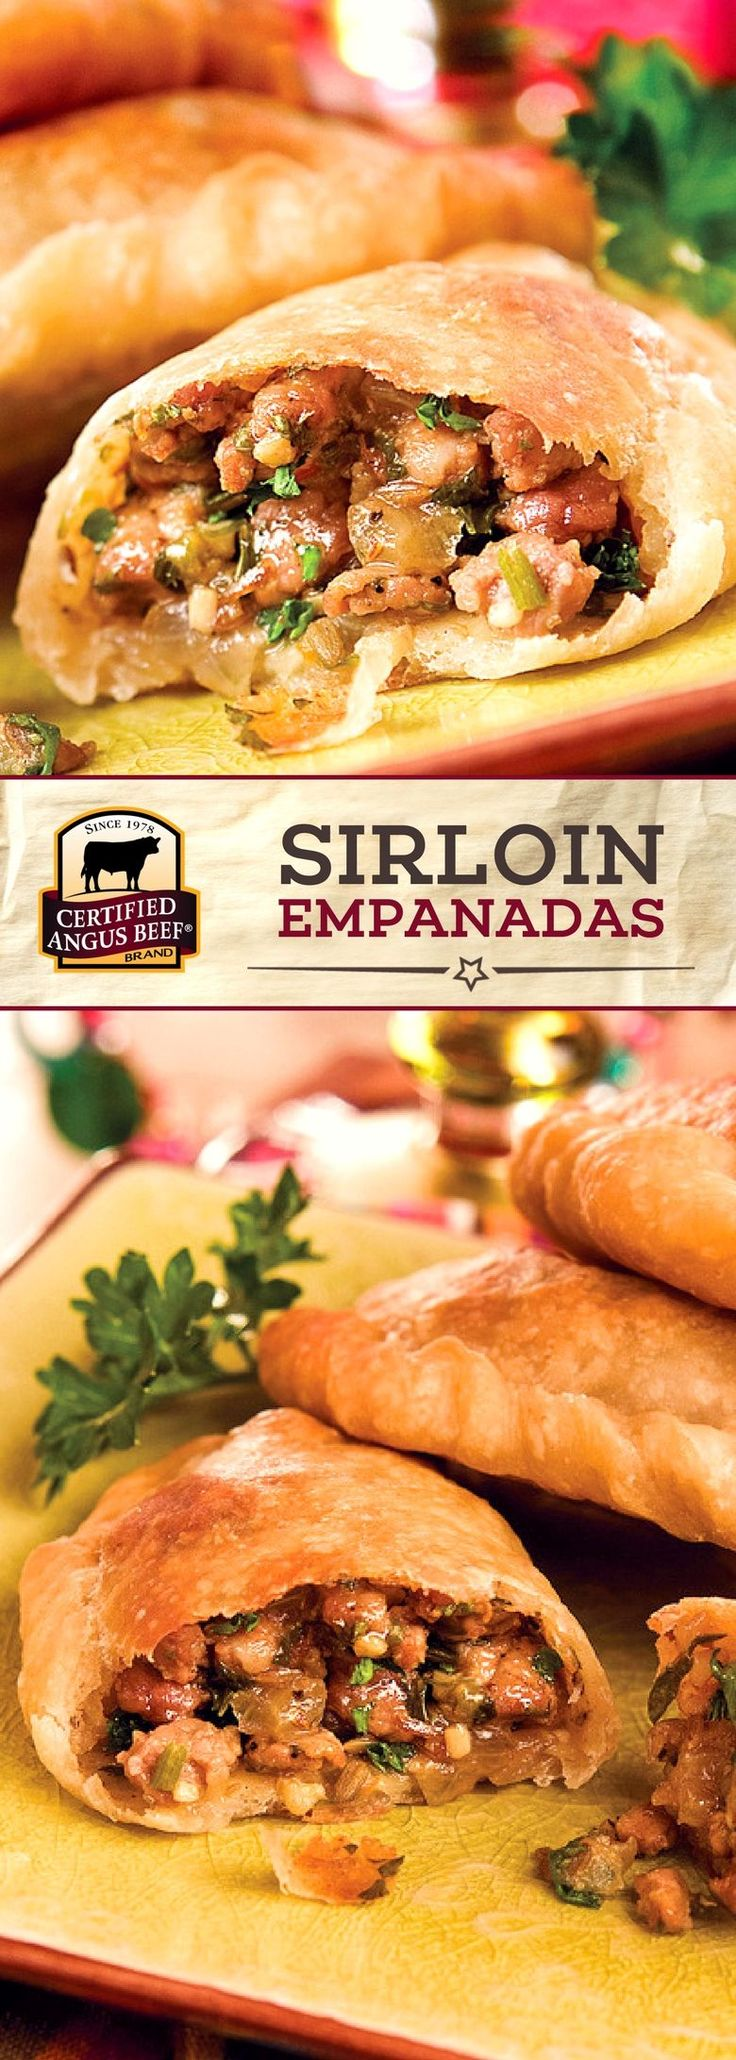 Sirloin Empanadas combines top sirloin or tri-tip steak with a blend of delicious spices, green chilies, and onion for a TASTY beef recipe! This dish makes a great appetizer recipe or main dish, and is PERFECT for game day! #beeffoodrecipes